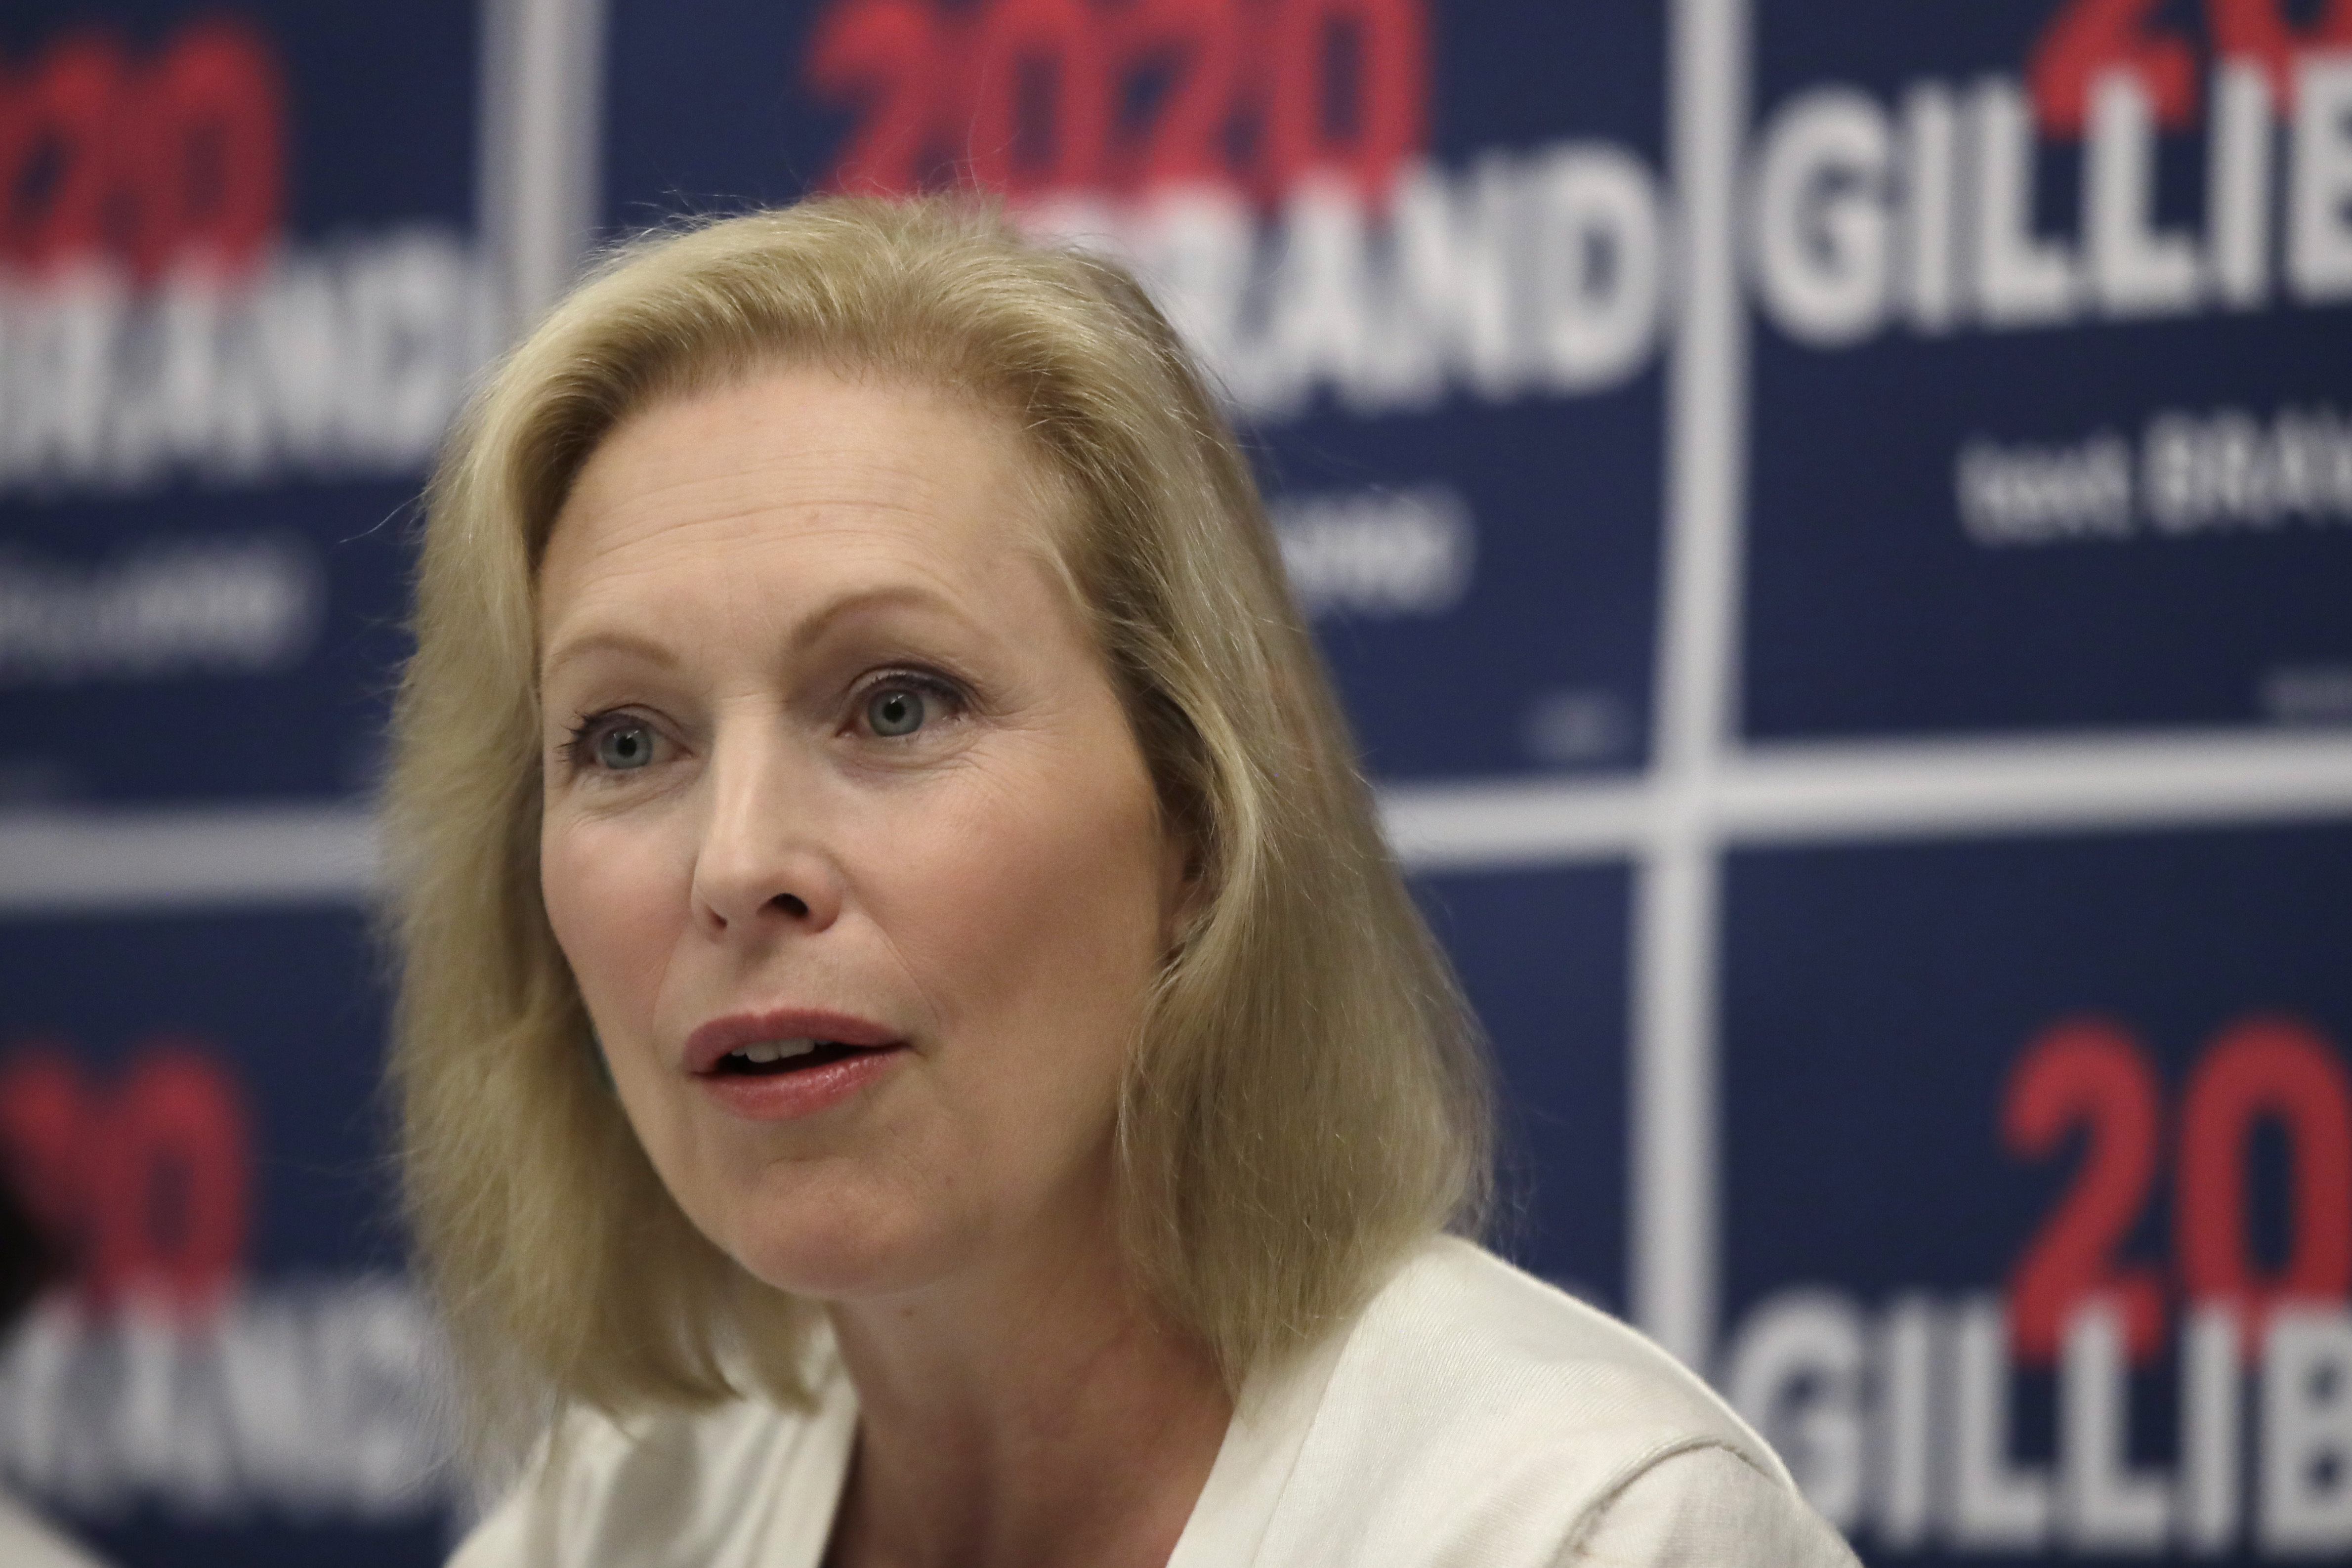 Sen. Kirsten Gillibrand rips family members who voted for Trump: 'I'm still angry'